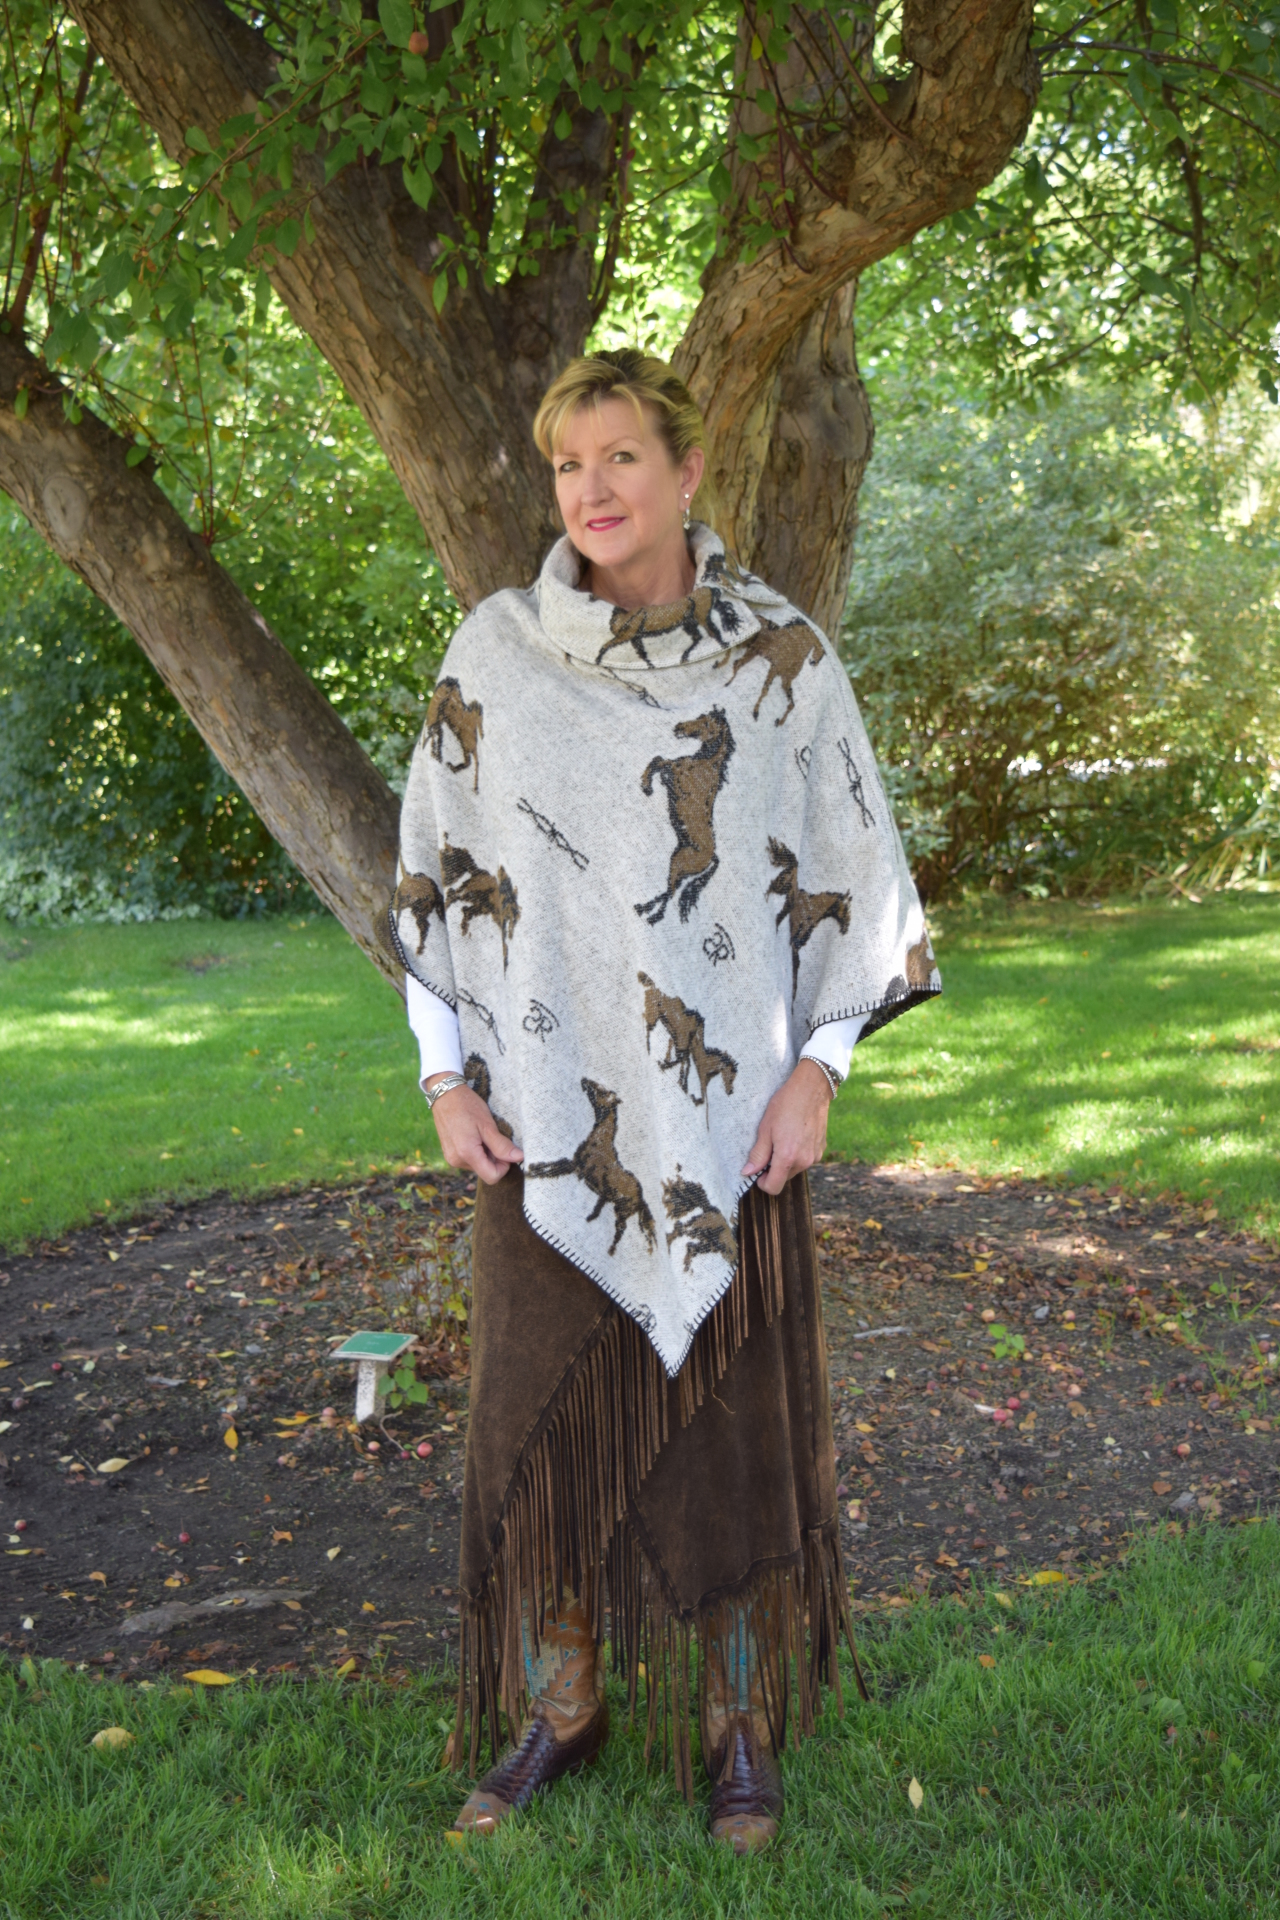 208HBO - OATMEAL HORSE BRANDS BUTTON COLLAR PONCHO - O/S - $119.95